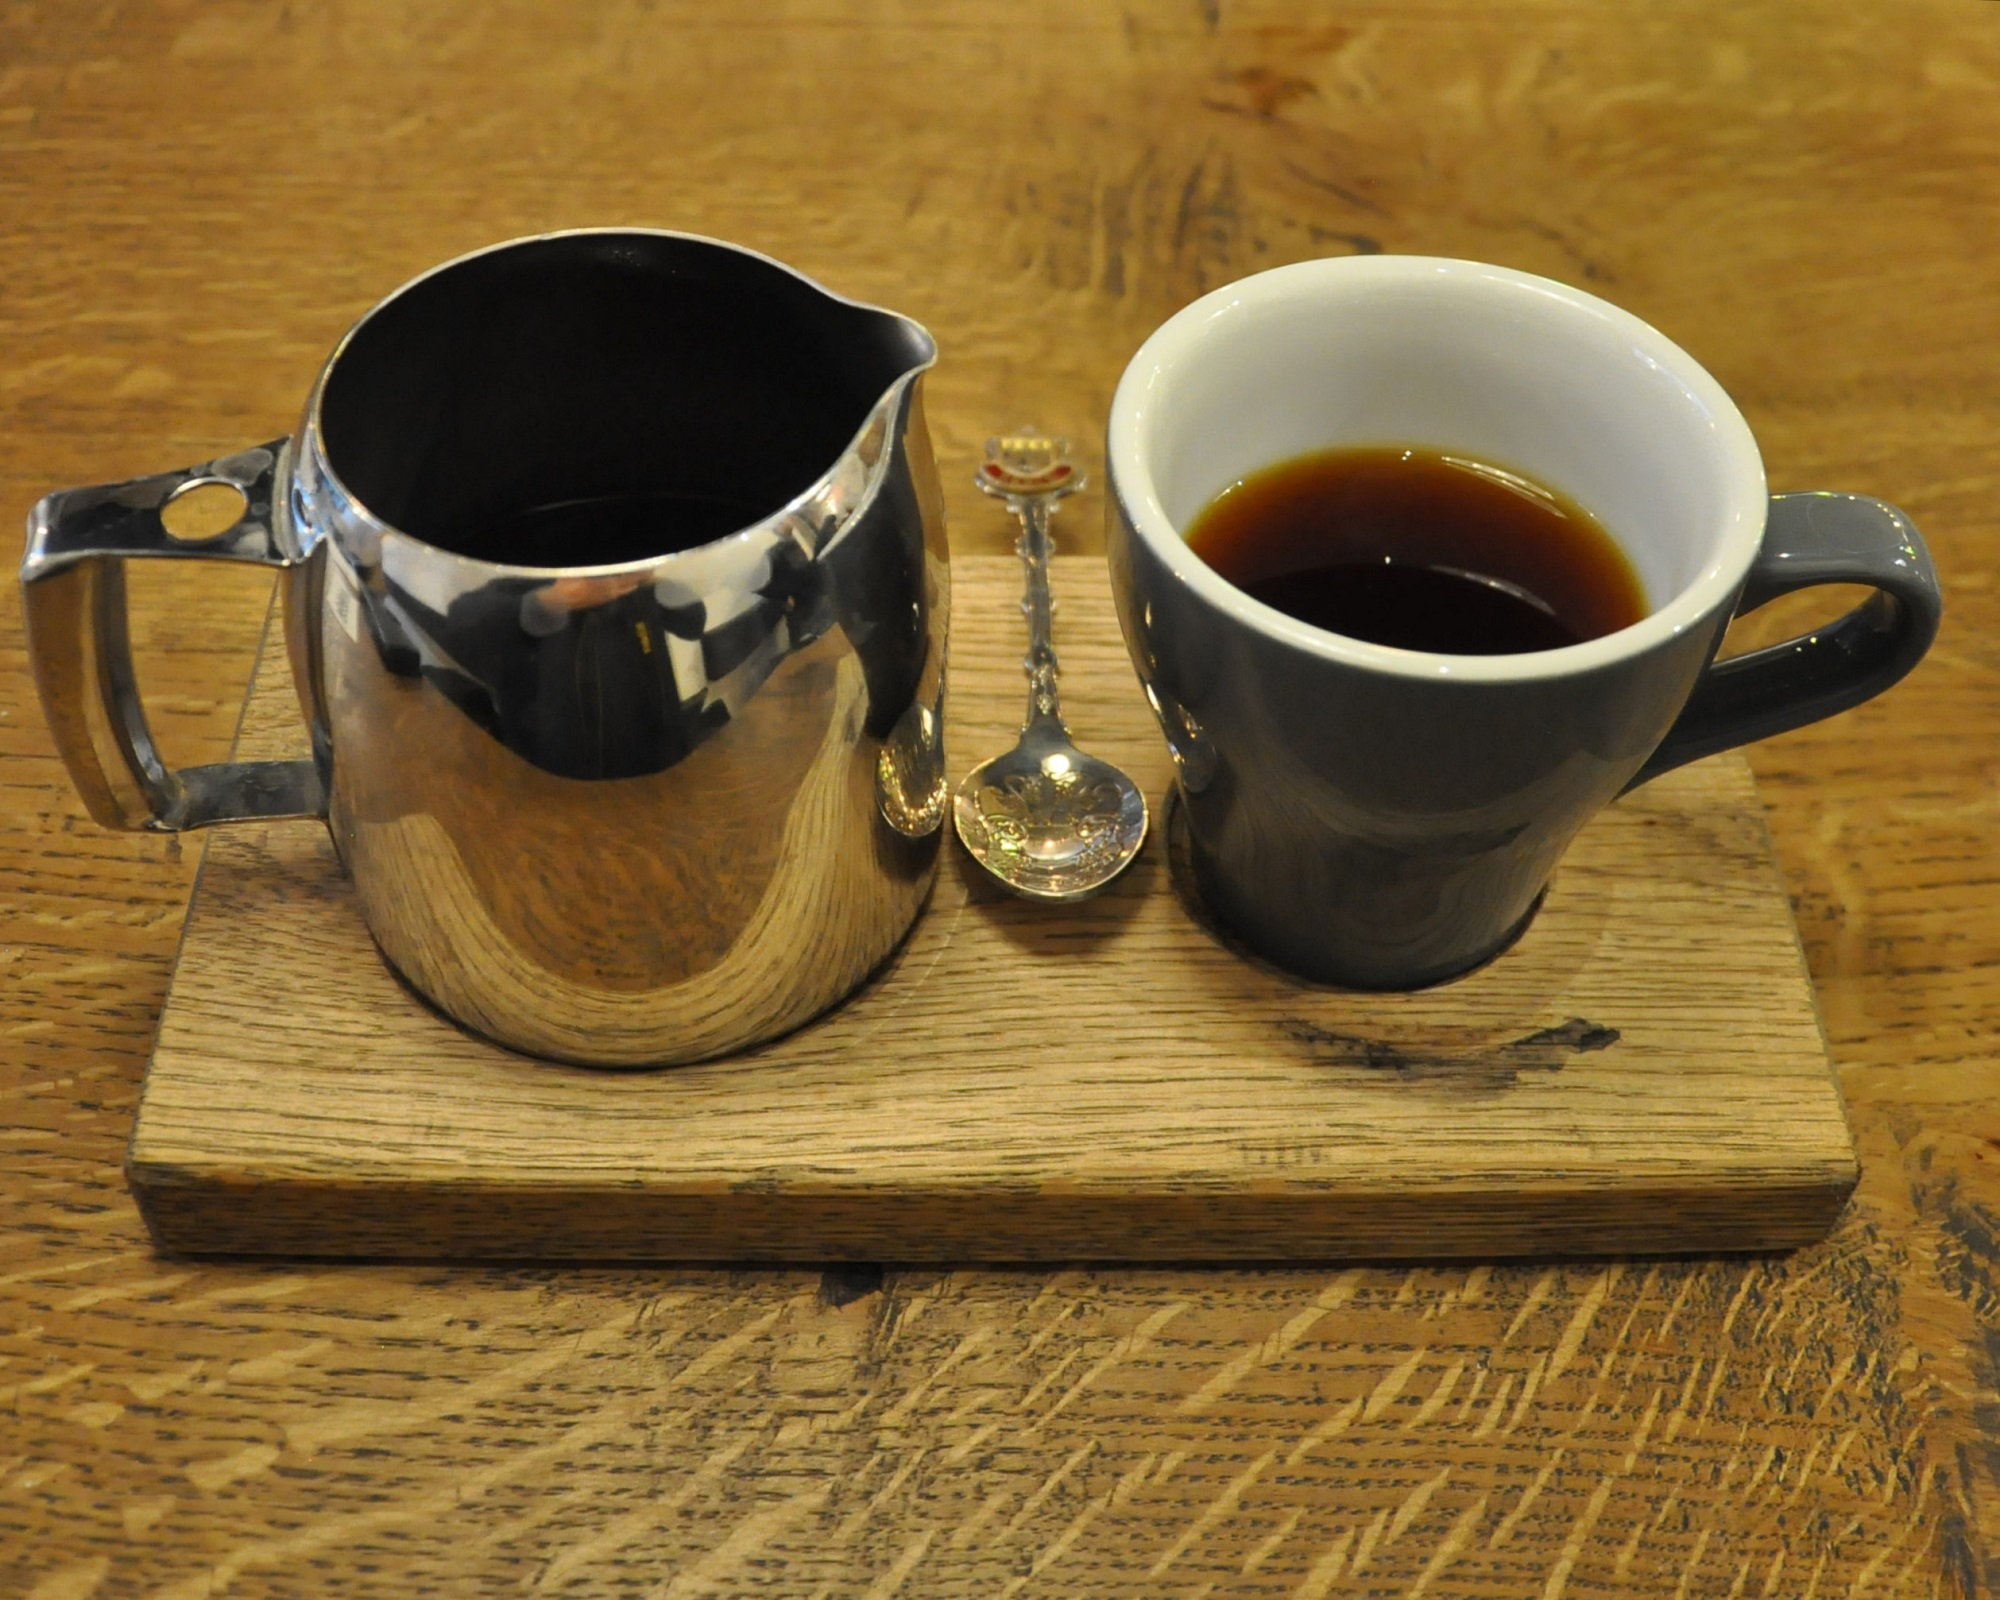 A beautifully-presented filter coffee at TAP, Russell Square, served on a wooden tray with the coffee in a metal jug and a tulip cup on the side.